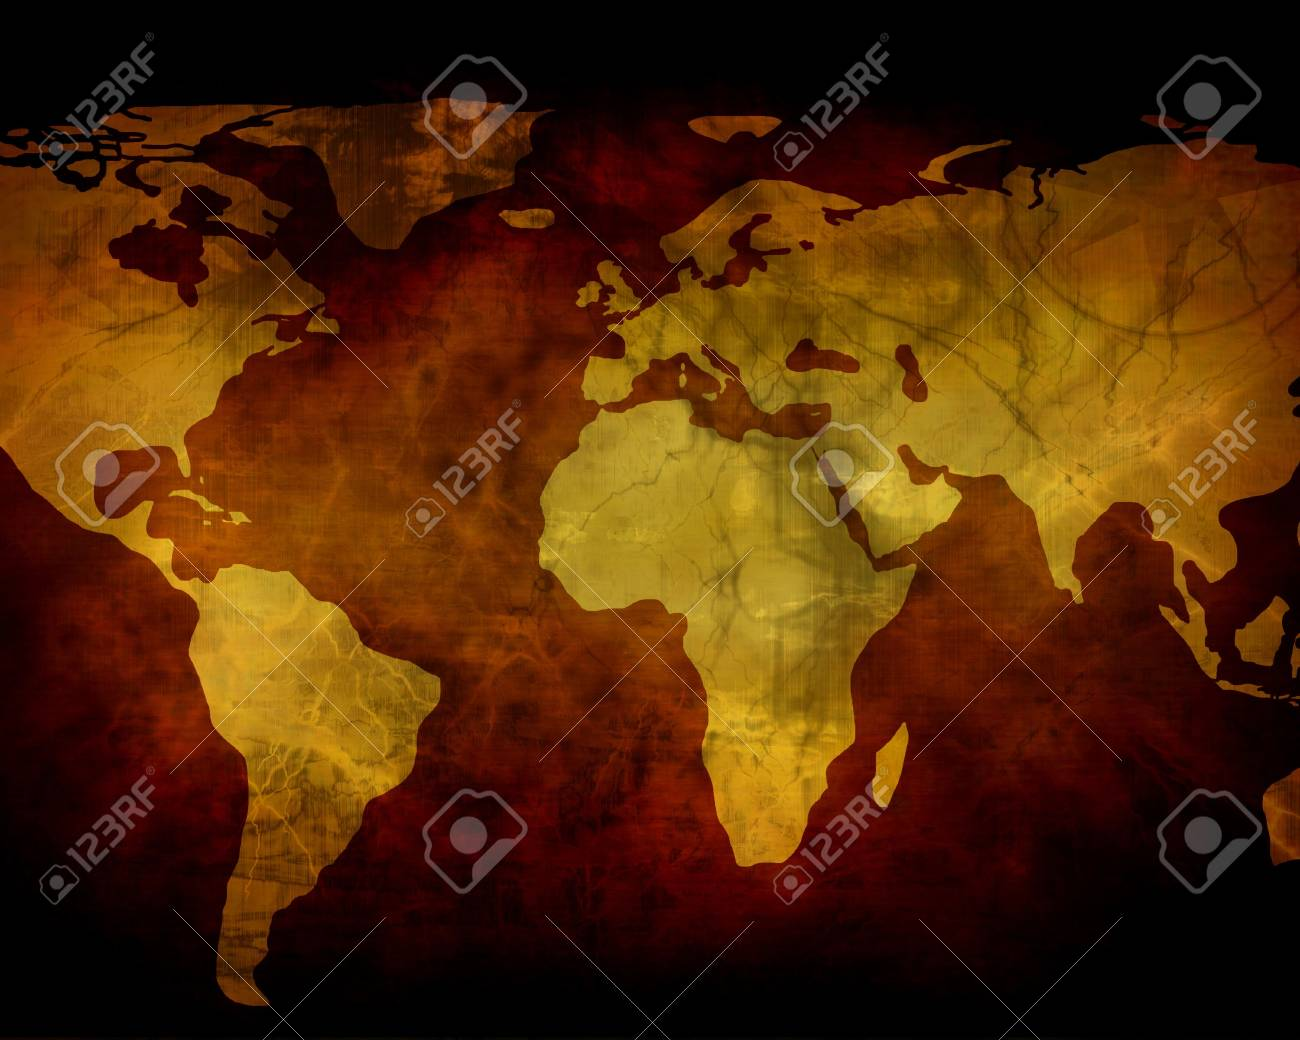 Old paper texture with world map Stock Photo - 2275110